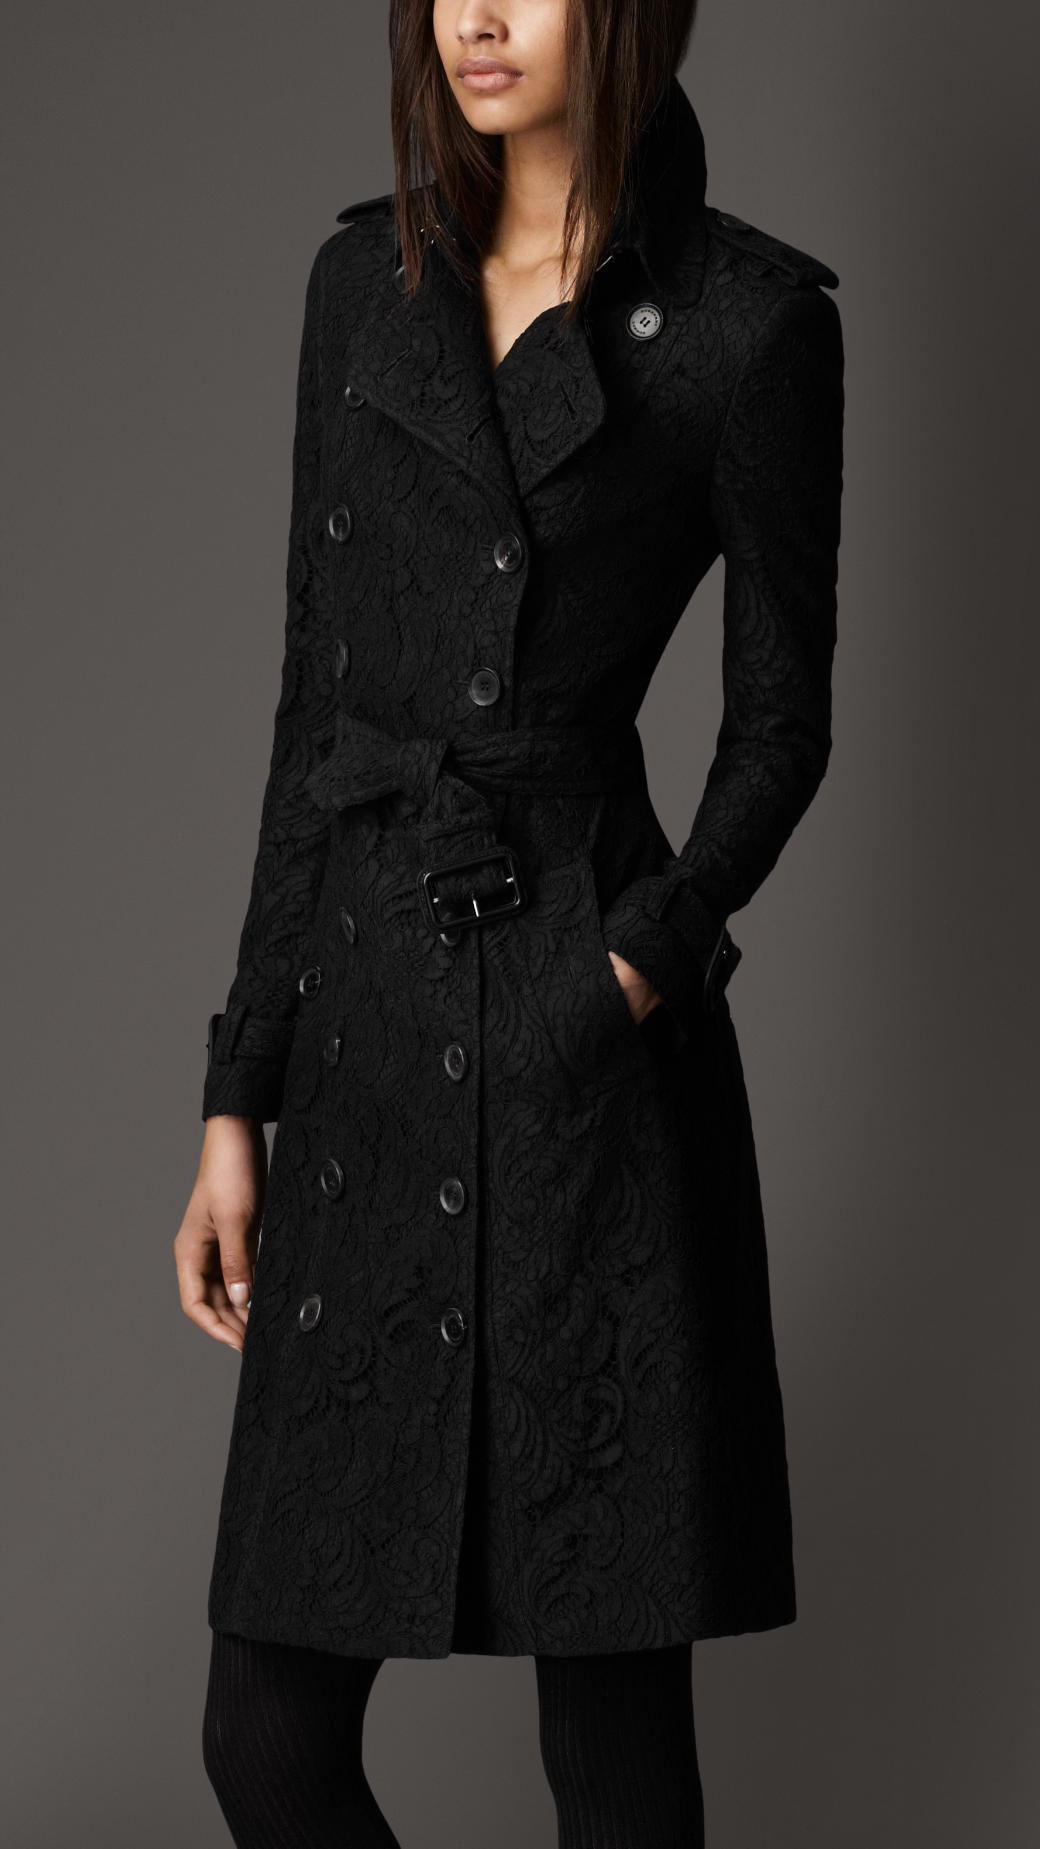 Find great deals on eBay for black lace trench coat. Shop with confidence.